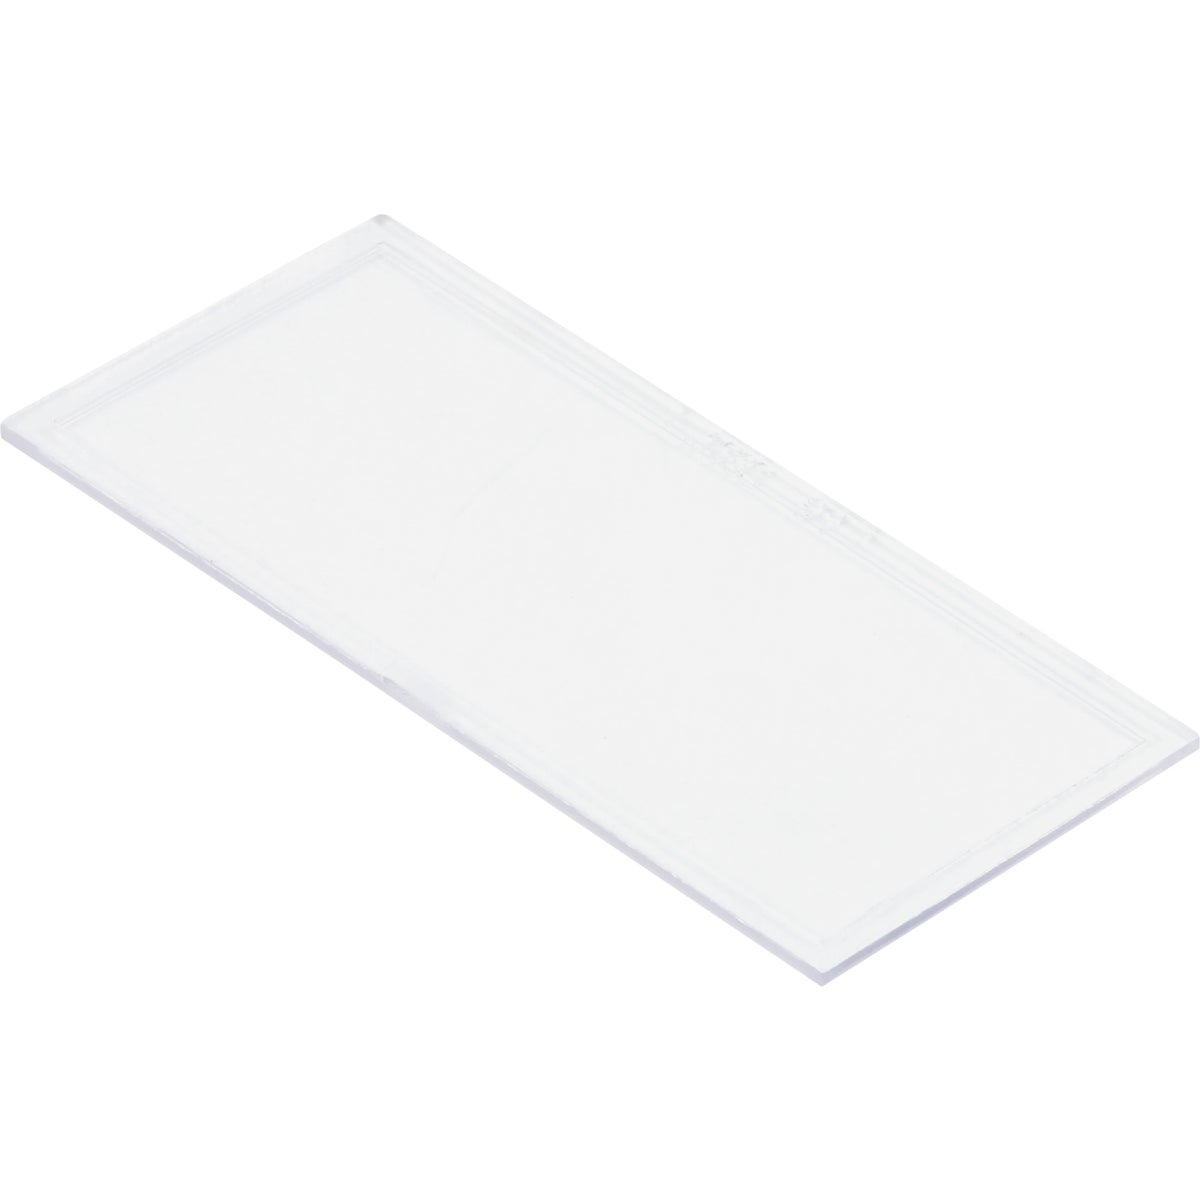 CLEAR LENS COVER - 56800 by Forney Industries